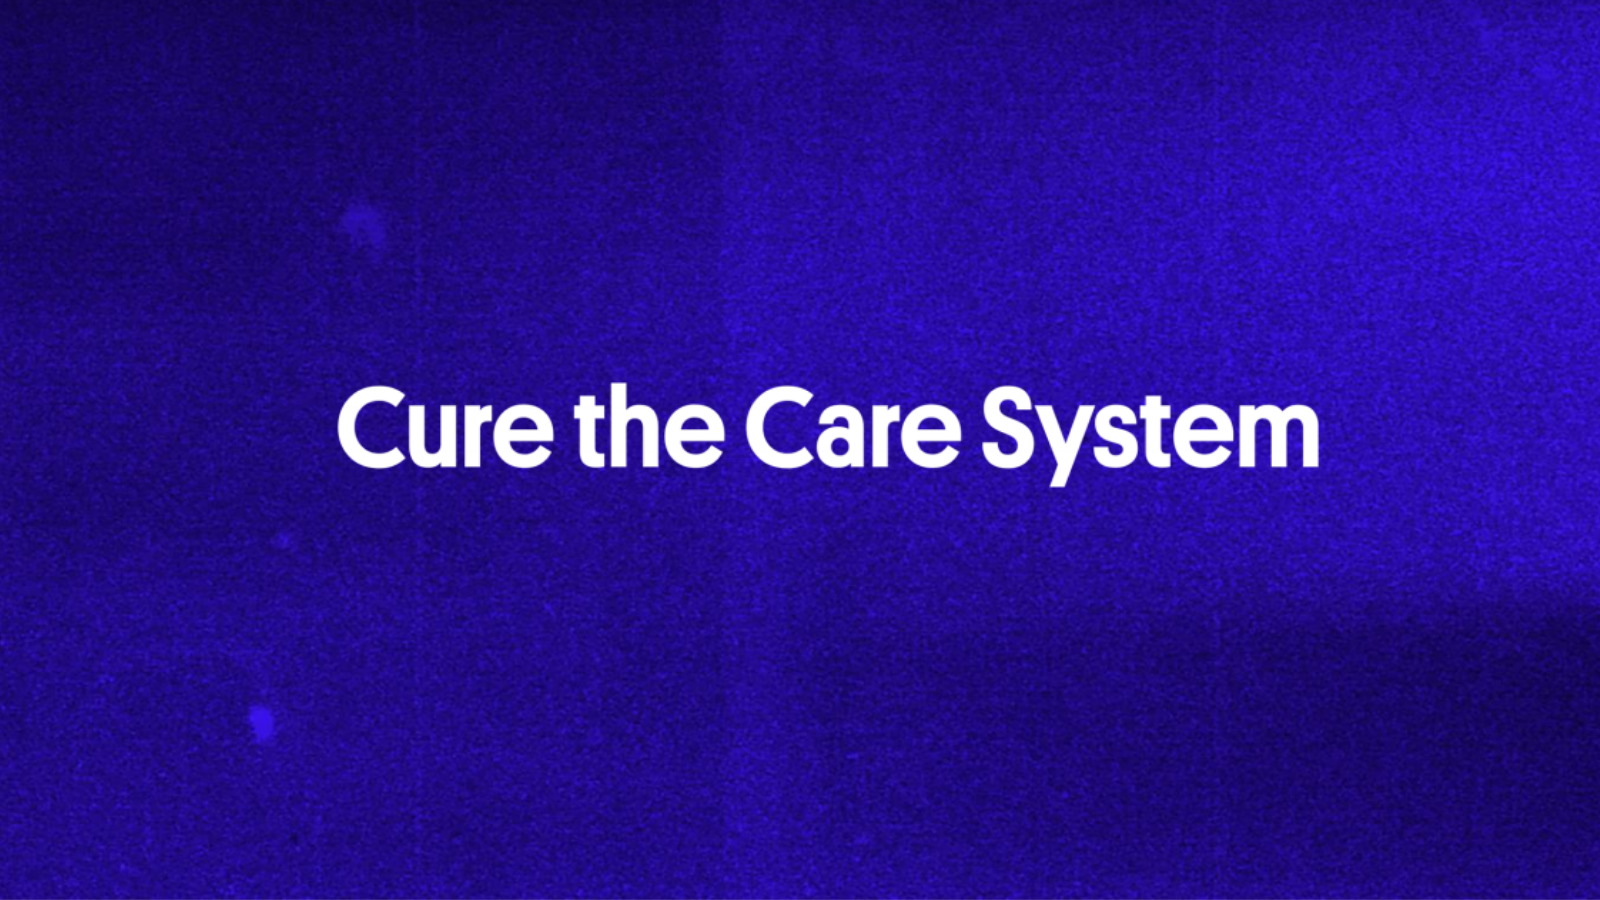 Cure the Care System